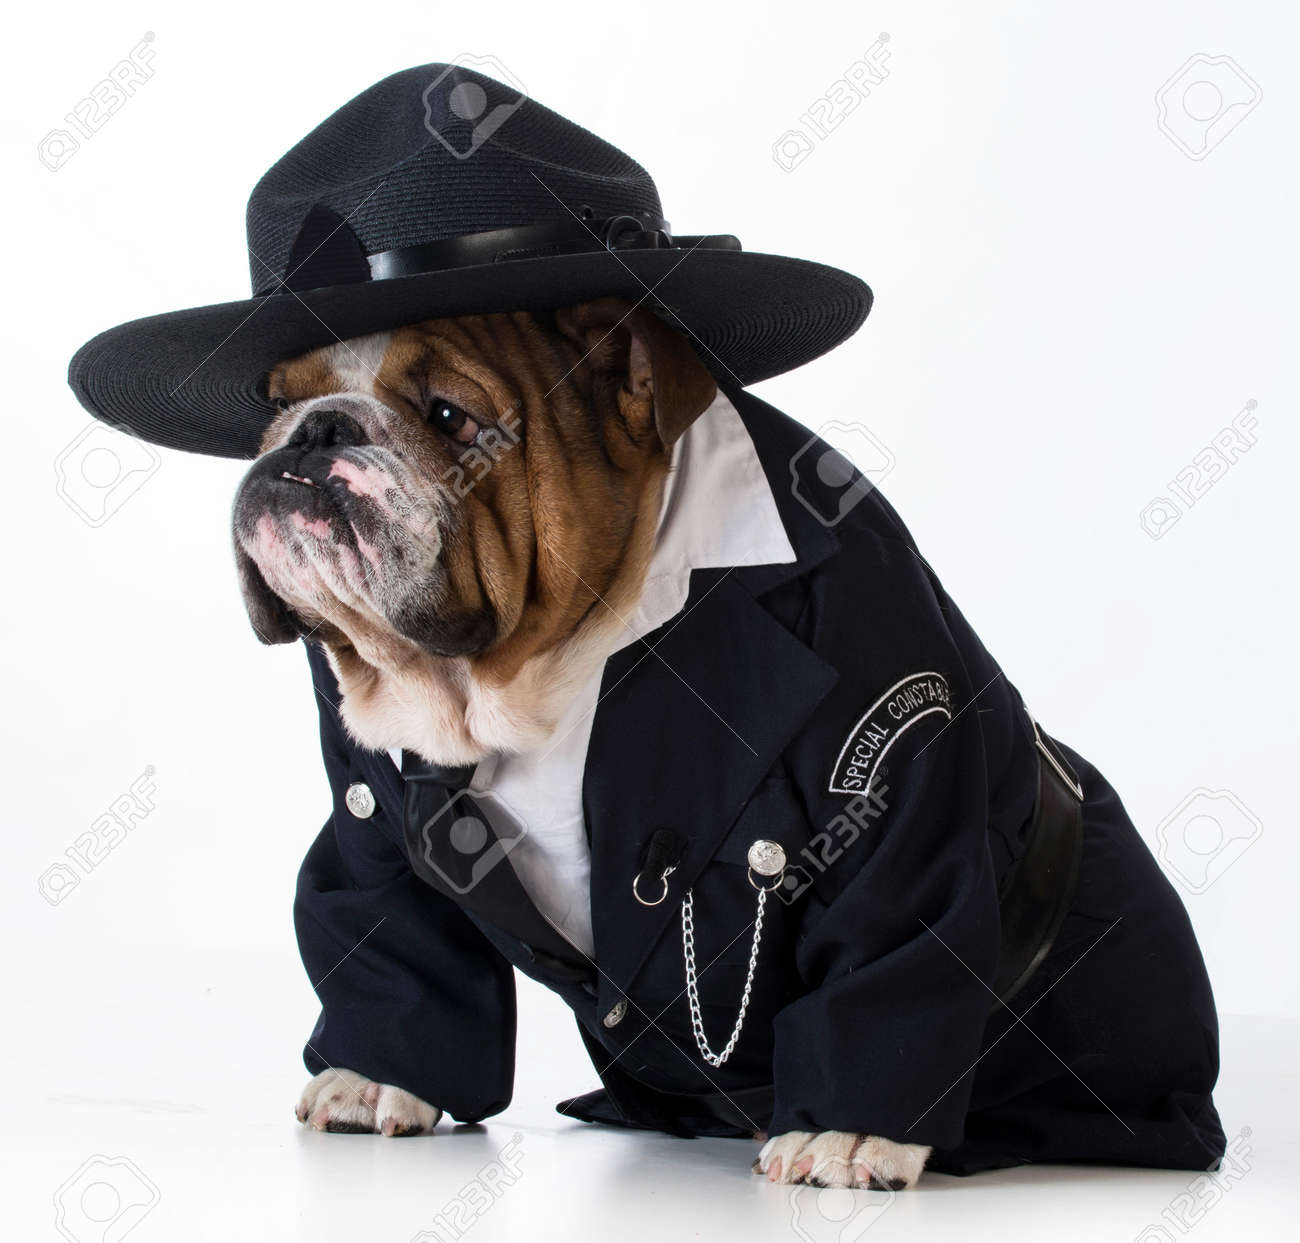 police officer or dog catcher - english bulldog wearing costume